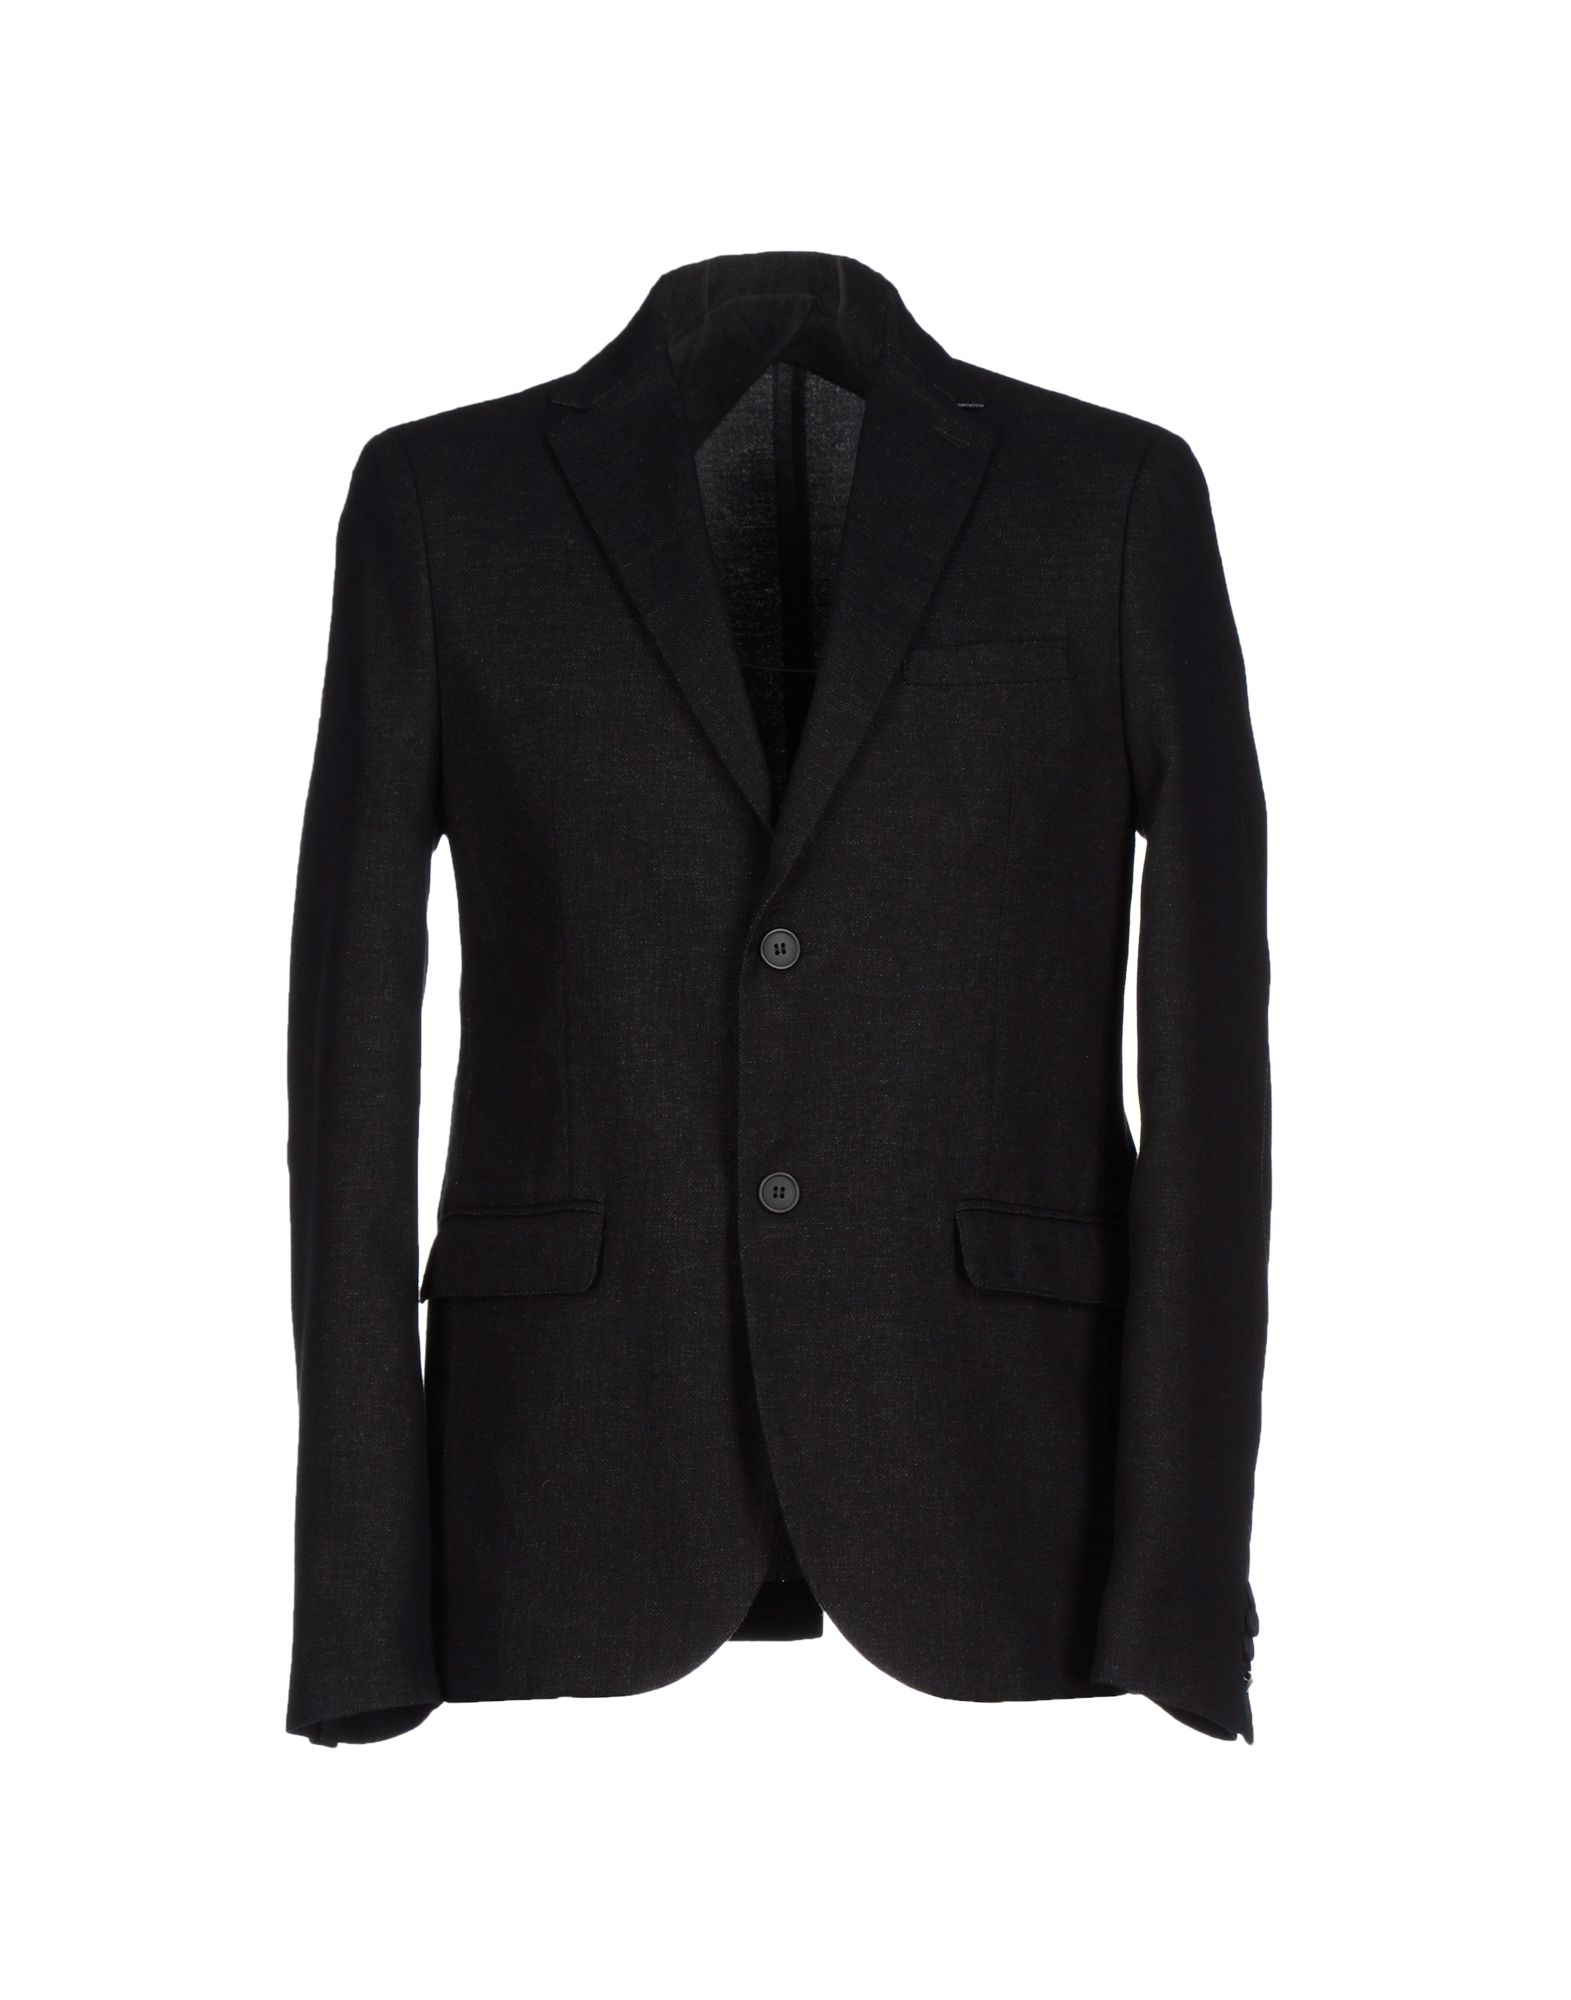 Shop 36S Men's Suits and get free shipping w/minimum purchase! Macy's Presents: The Edit - A curated mix of fashion and inspiration Check It Out Free Shipping with $49 purchase + Free Store Pickup.